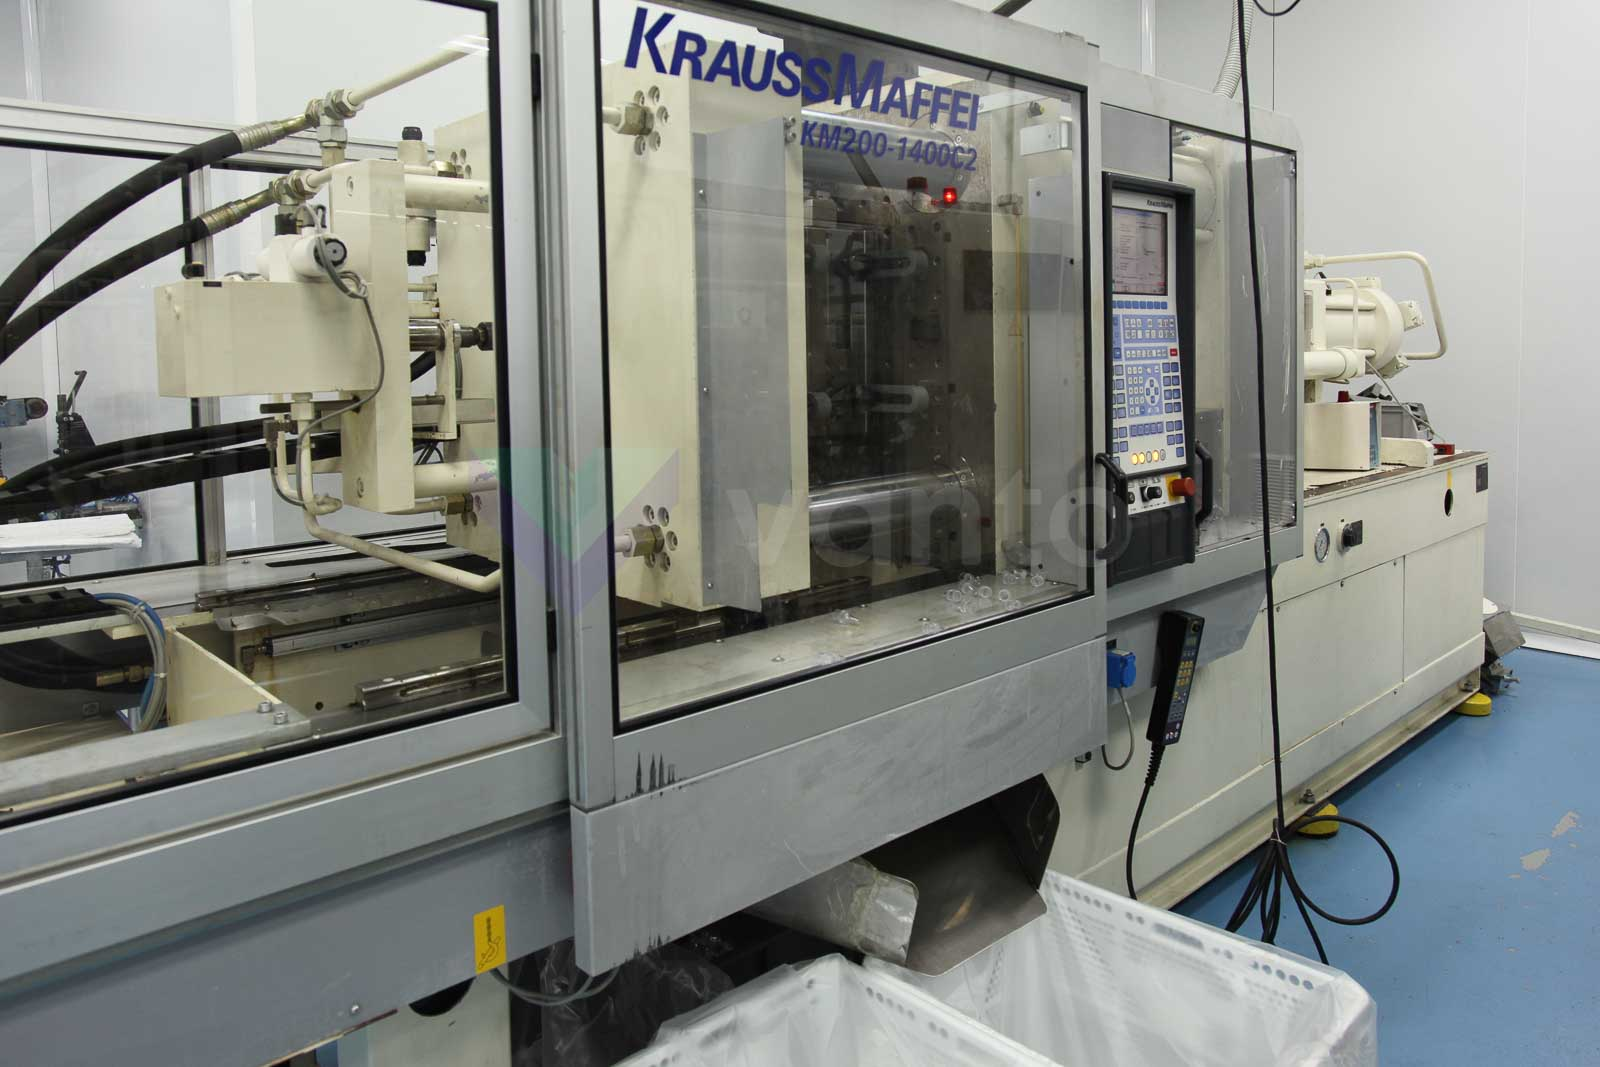 KRAUSS MAFFEI KM 200-1400 C2 200t injection molding machine (2002) id3447